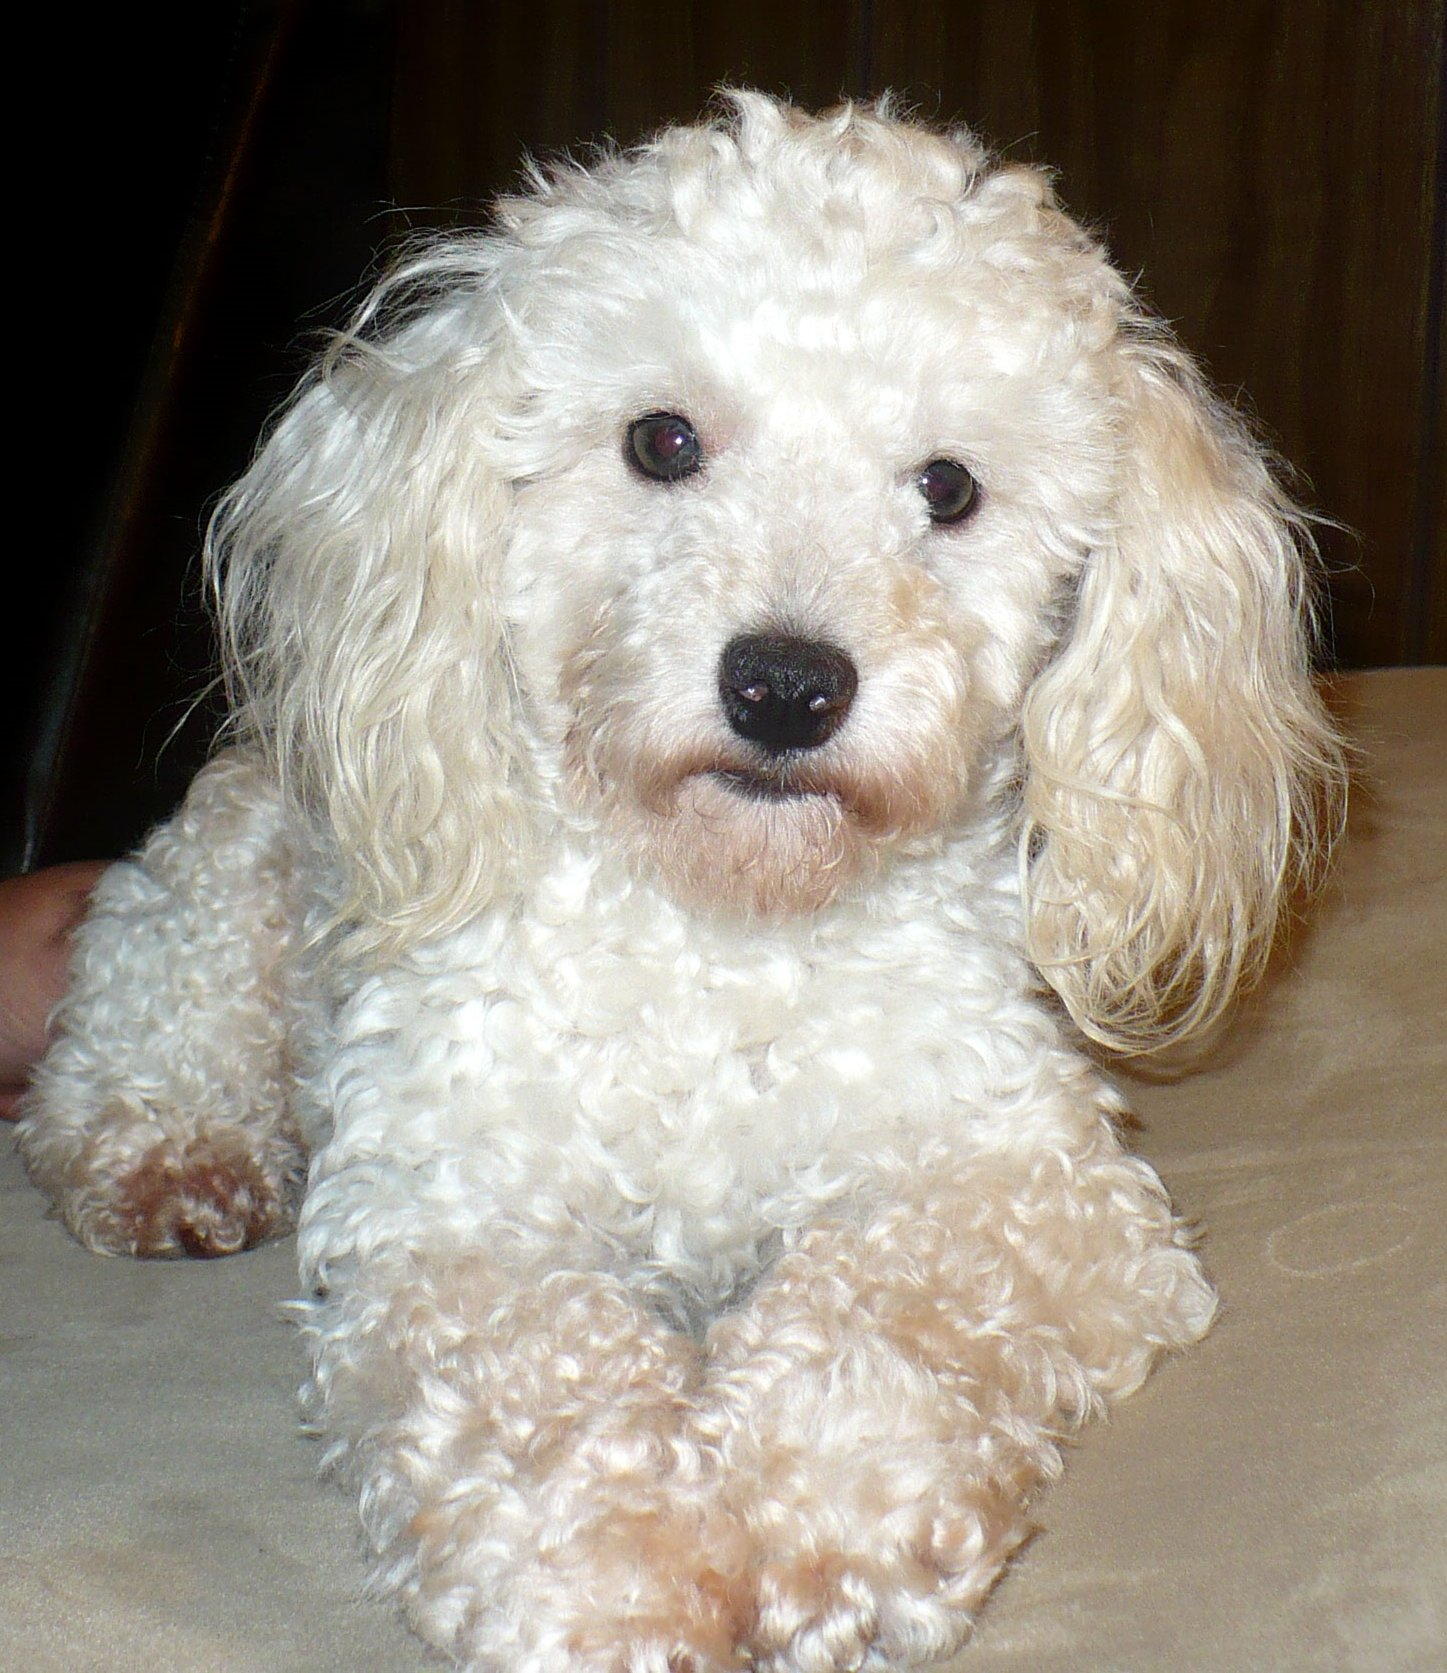 Poodle Google image from http://all-puppies.com/12-adorable-white-poodle-puppy-pictures.html